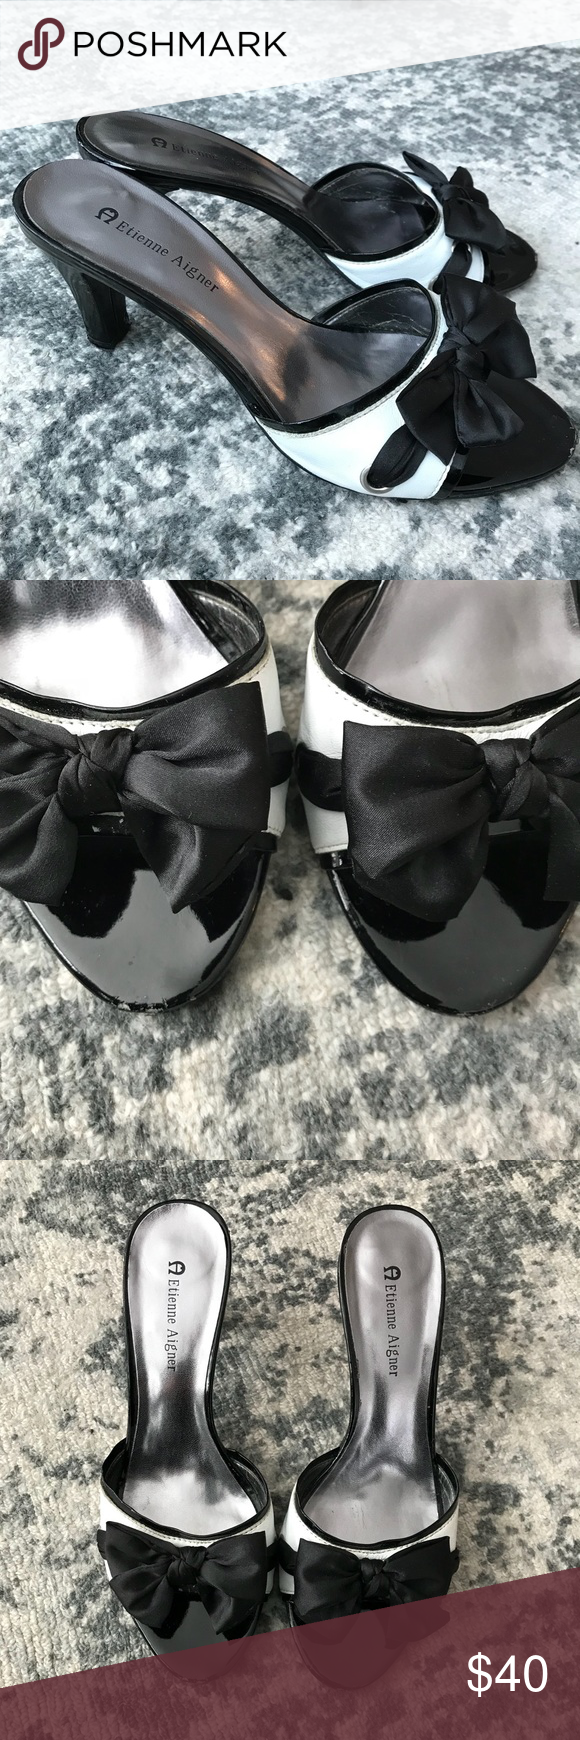 ETIENNE AIGNER black and white bow pumps 7 Wedding shoes